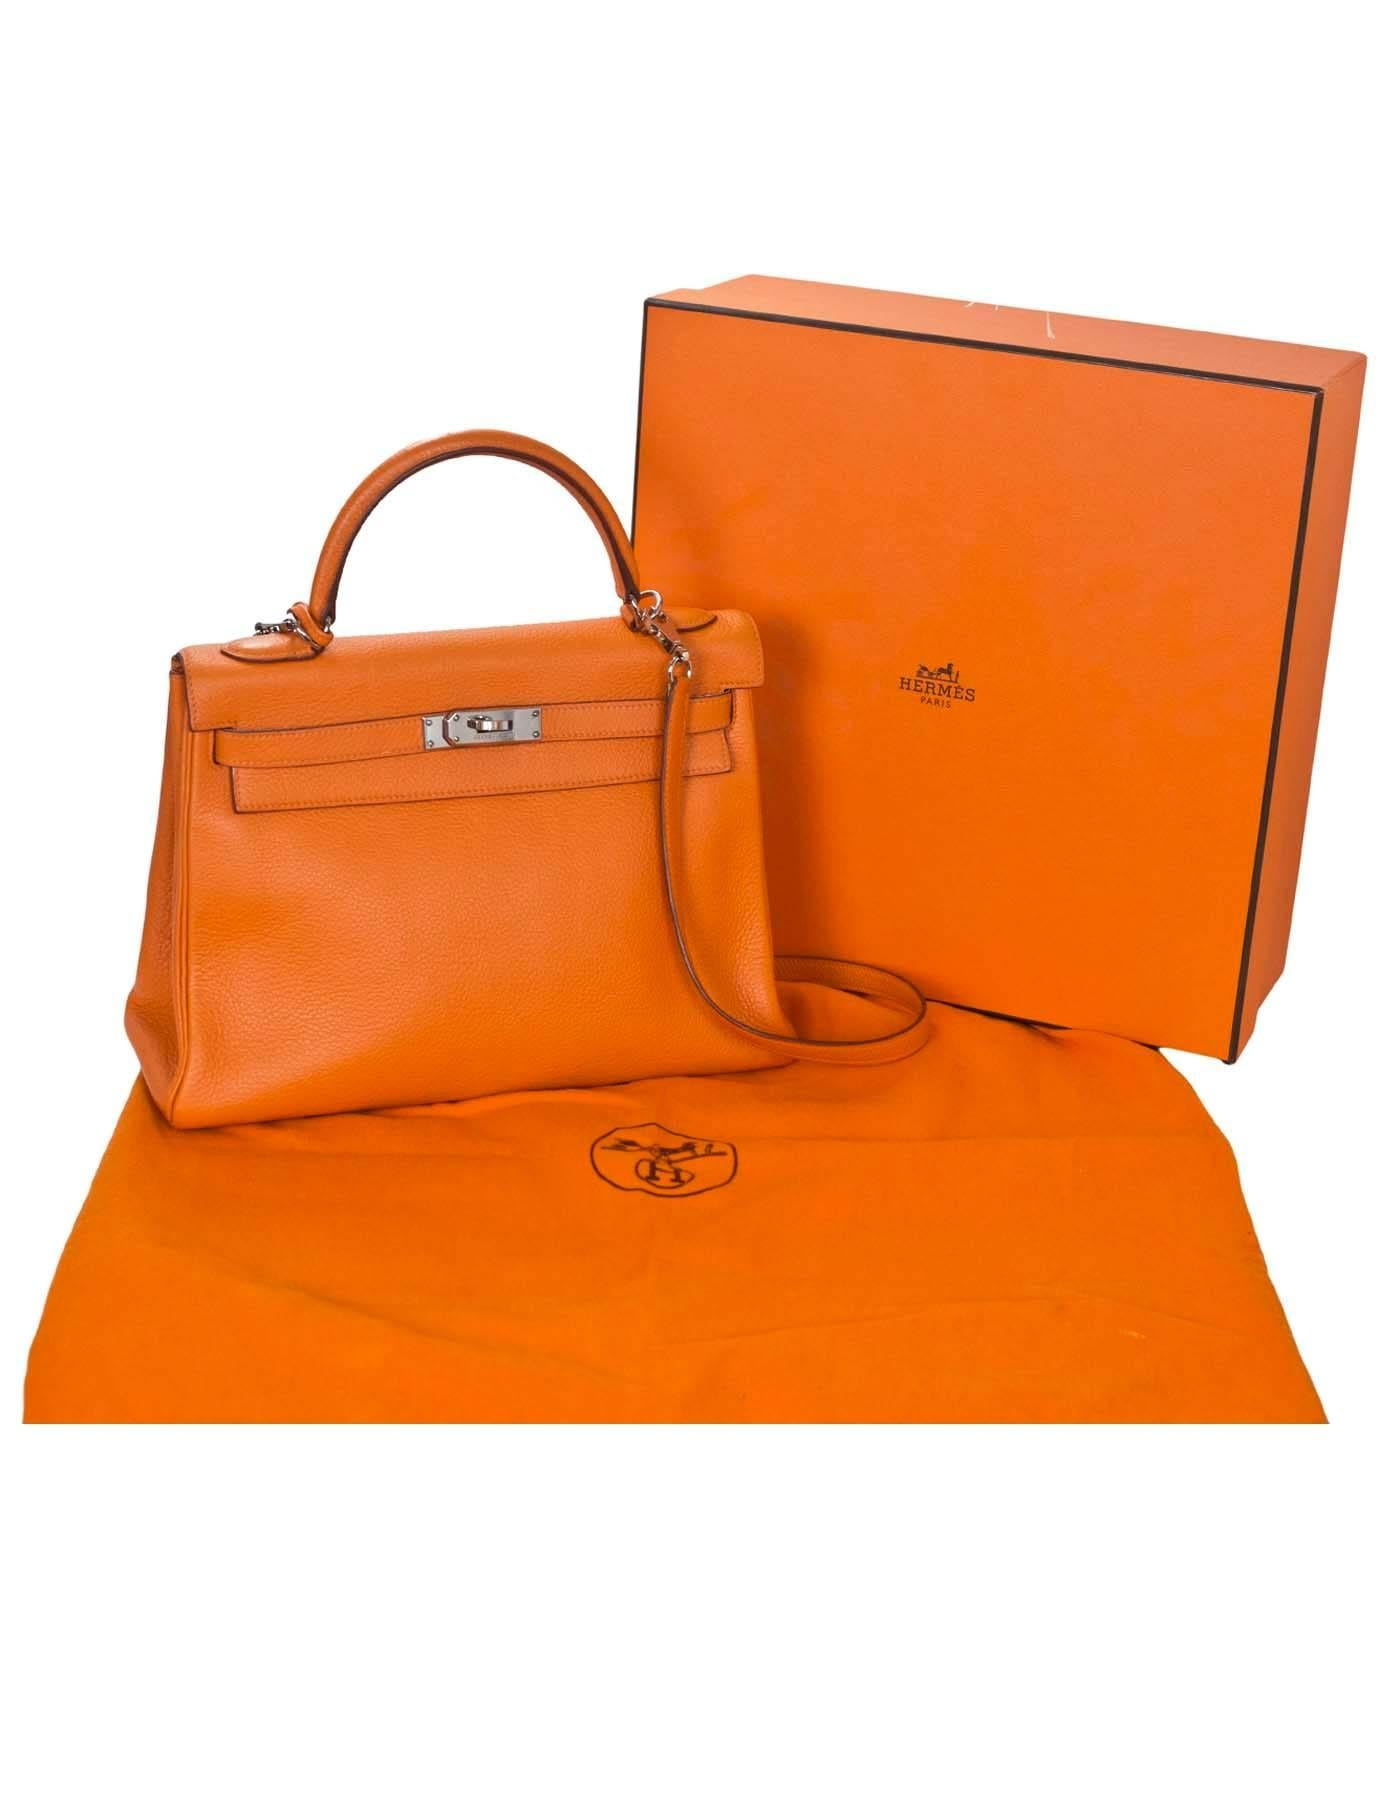 b91a096e643 ... best price hermes orange clemence leather 32cm kelly bag phw for sale 6  c1842 e49ba